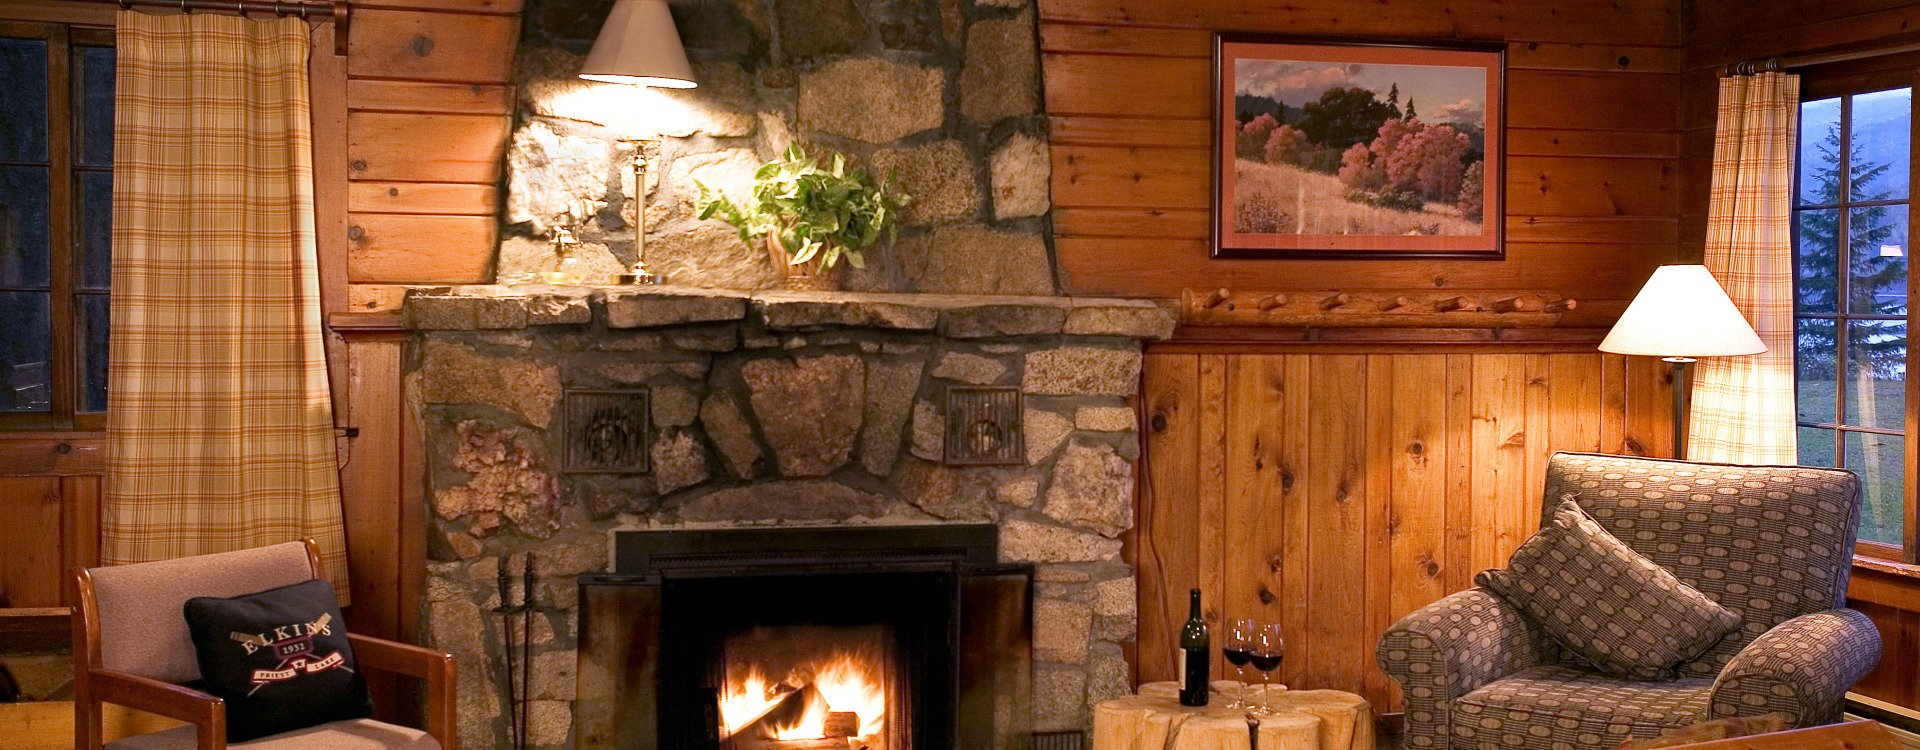 Inside our cabins with fireplace